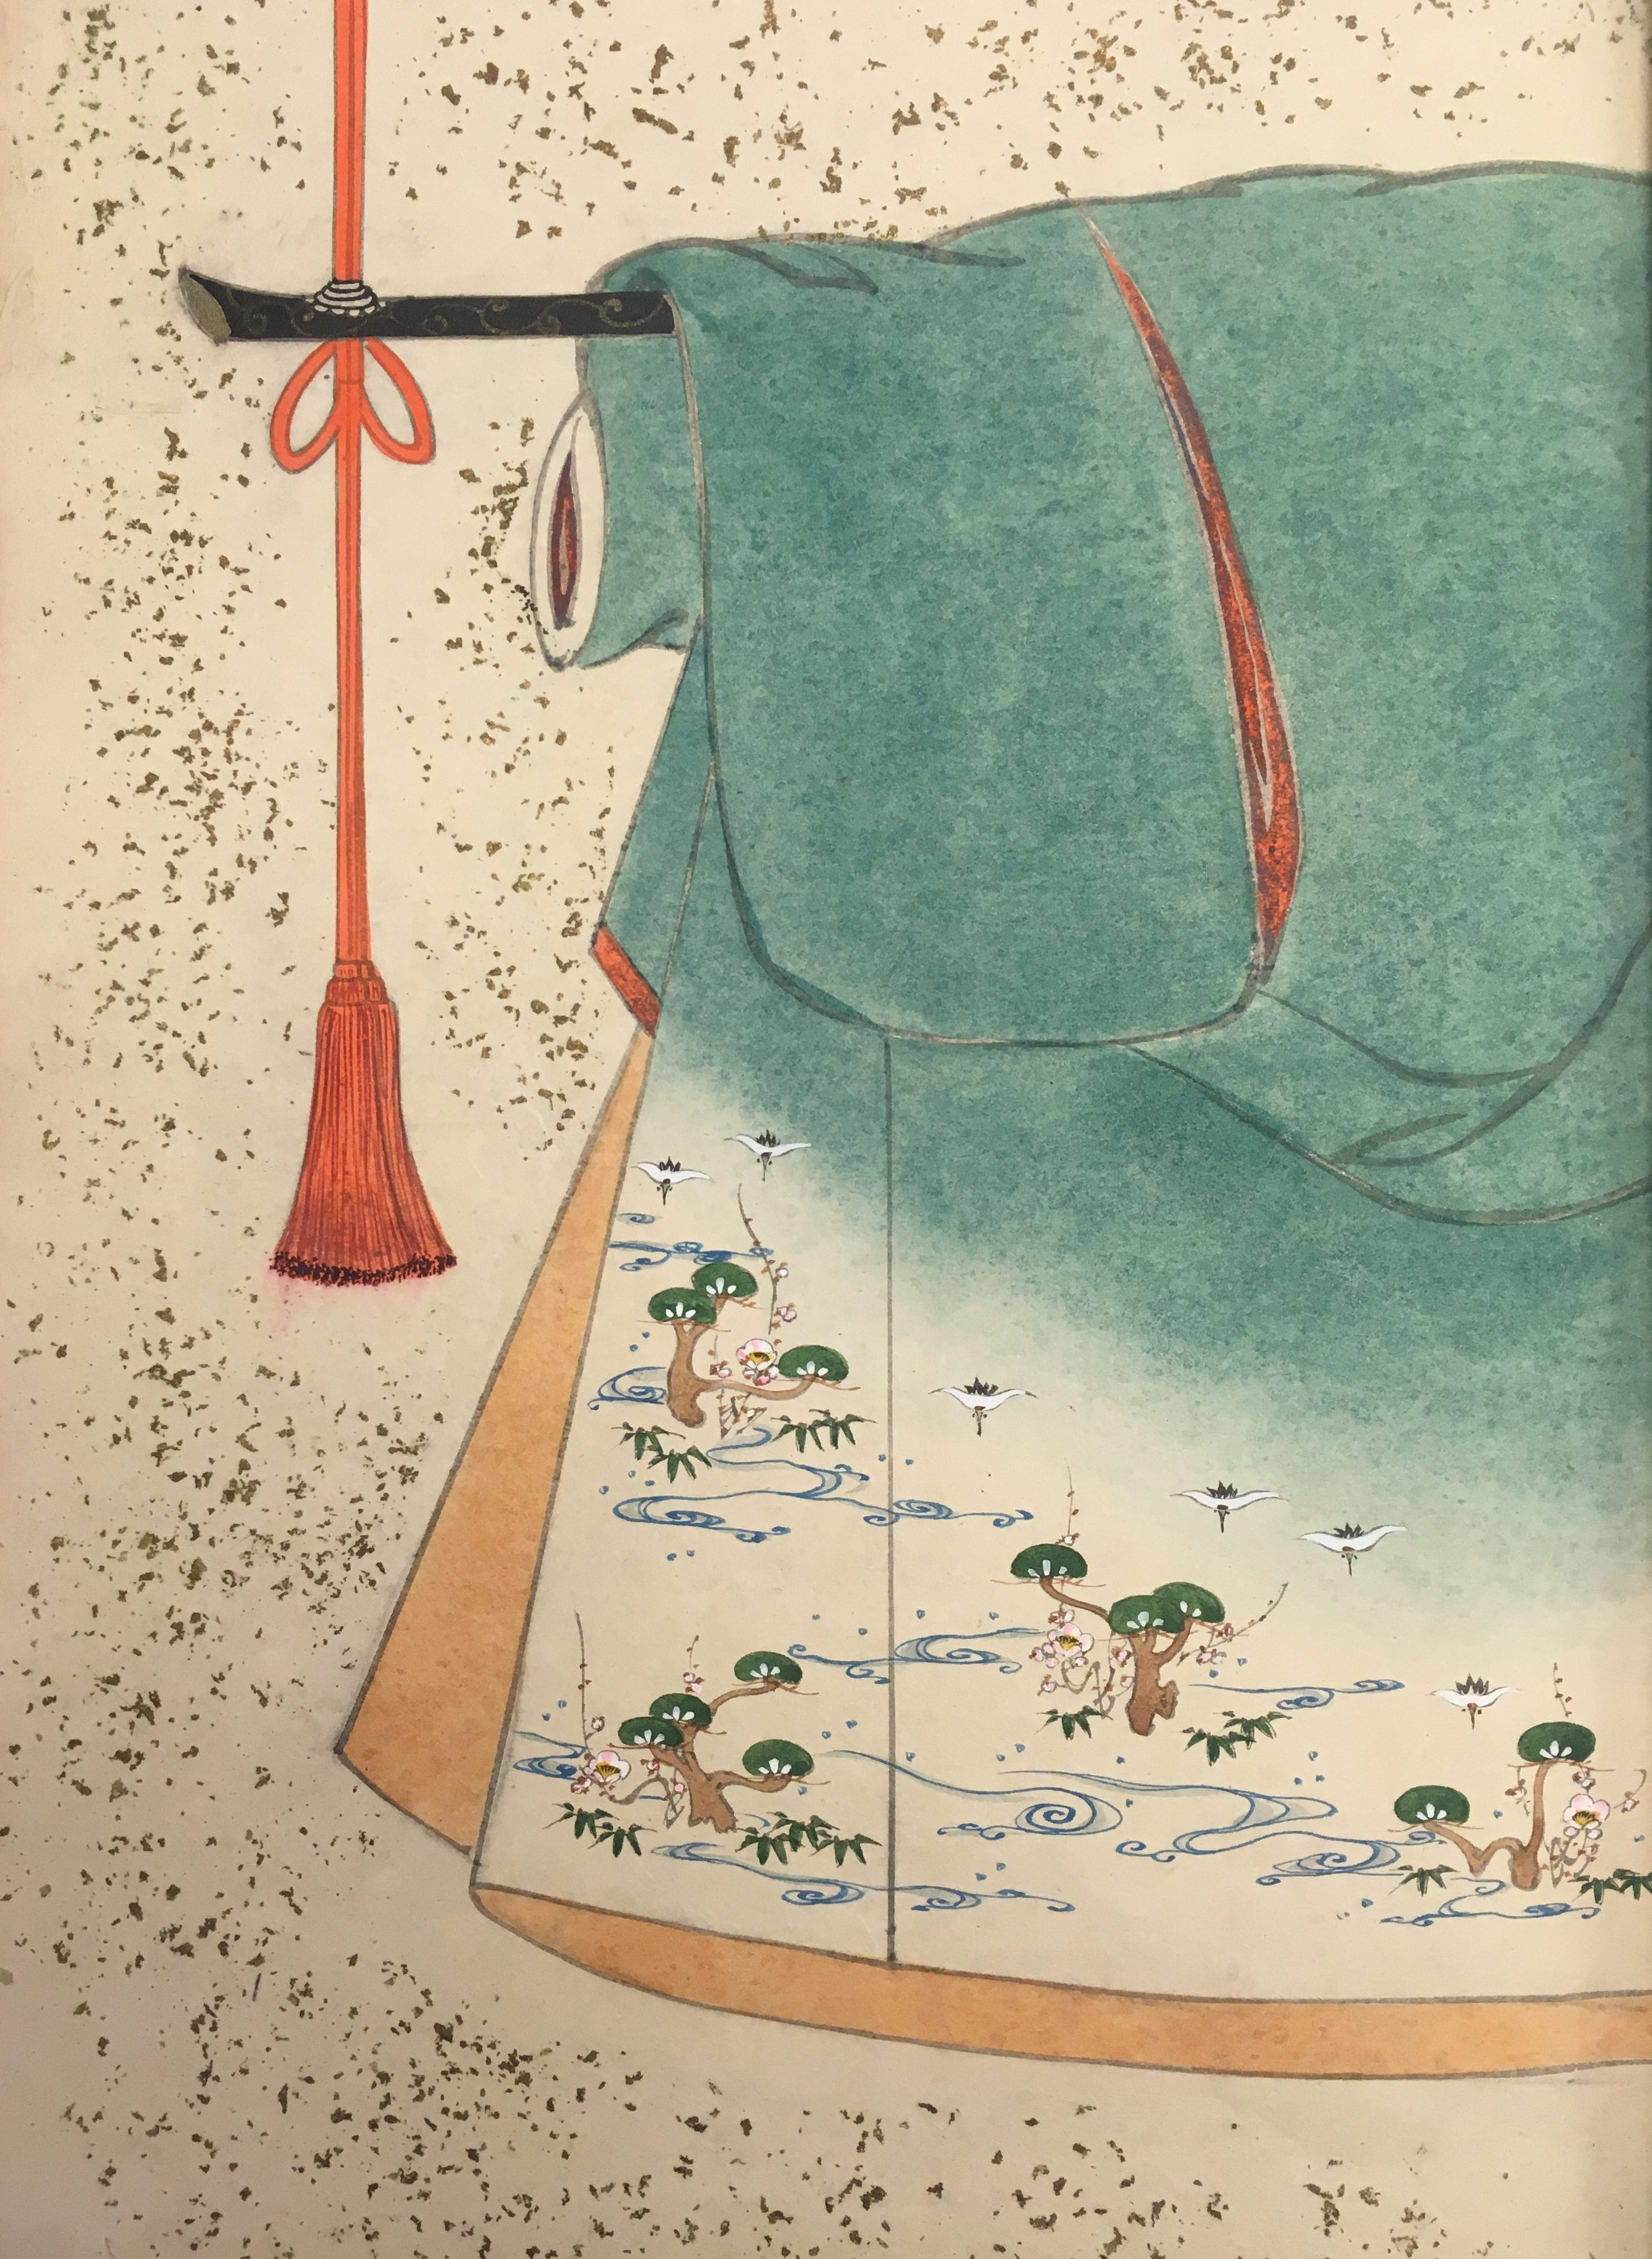 A turquoise kimono design. The kimono also has a tan interior, and a pattern depicting gulls, trees, and sea currents in the lower exterior corner.